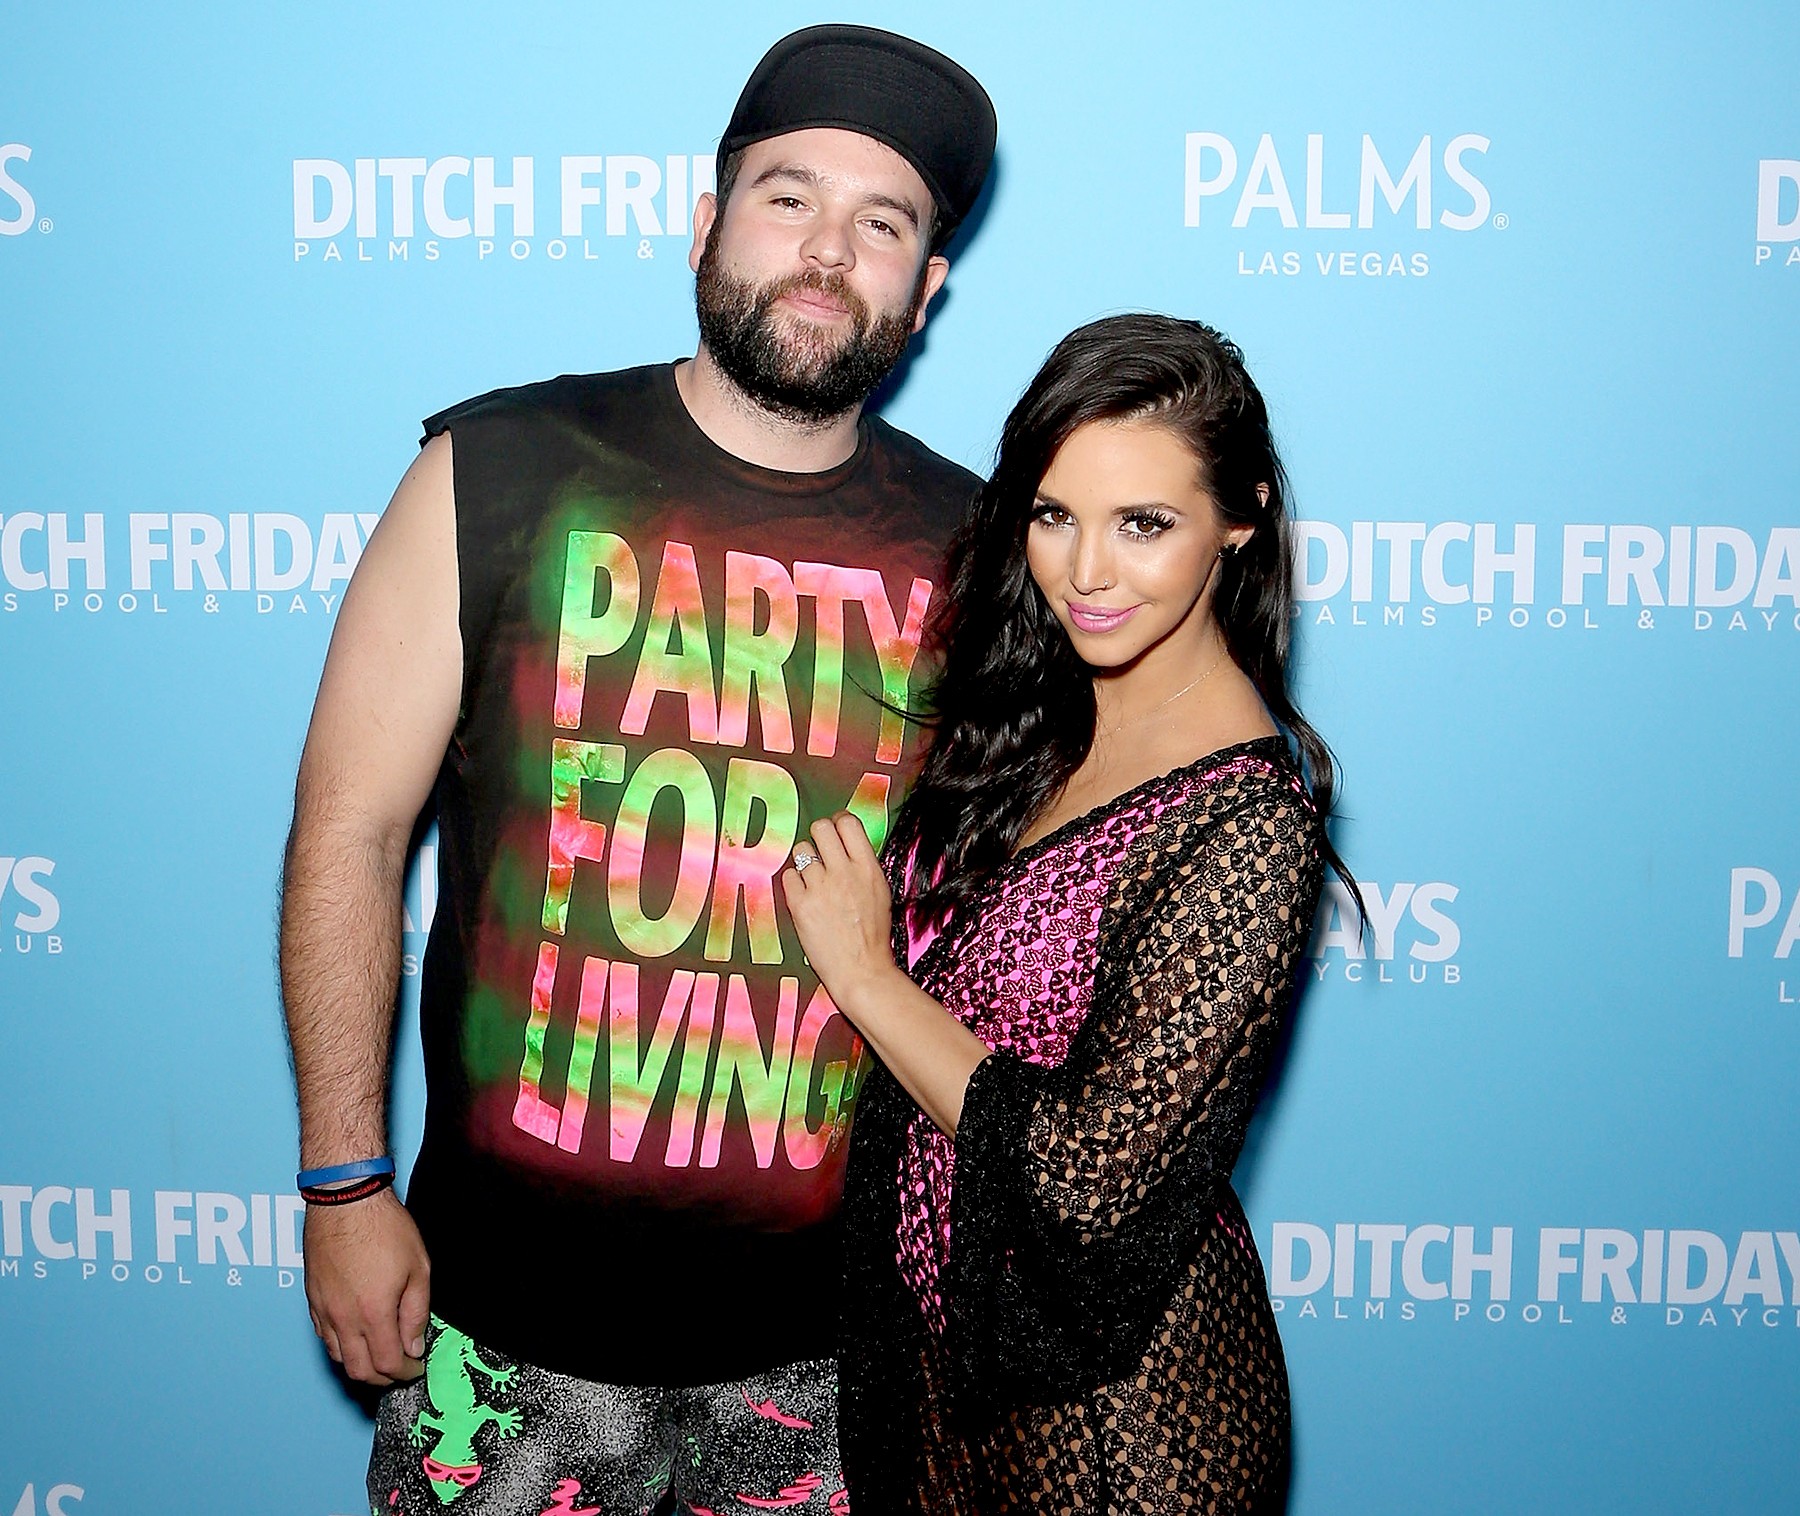 Mike Shay and Scheana Shay arrive at Ditch Fridays at Palms Casino Resort to celebrate her birthday on May 8, 2015 in Las Vegas, Nevada.